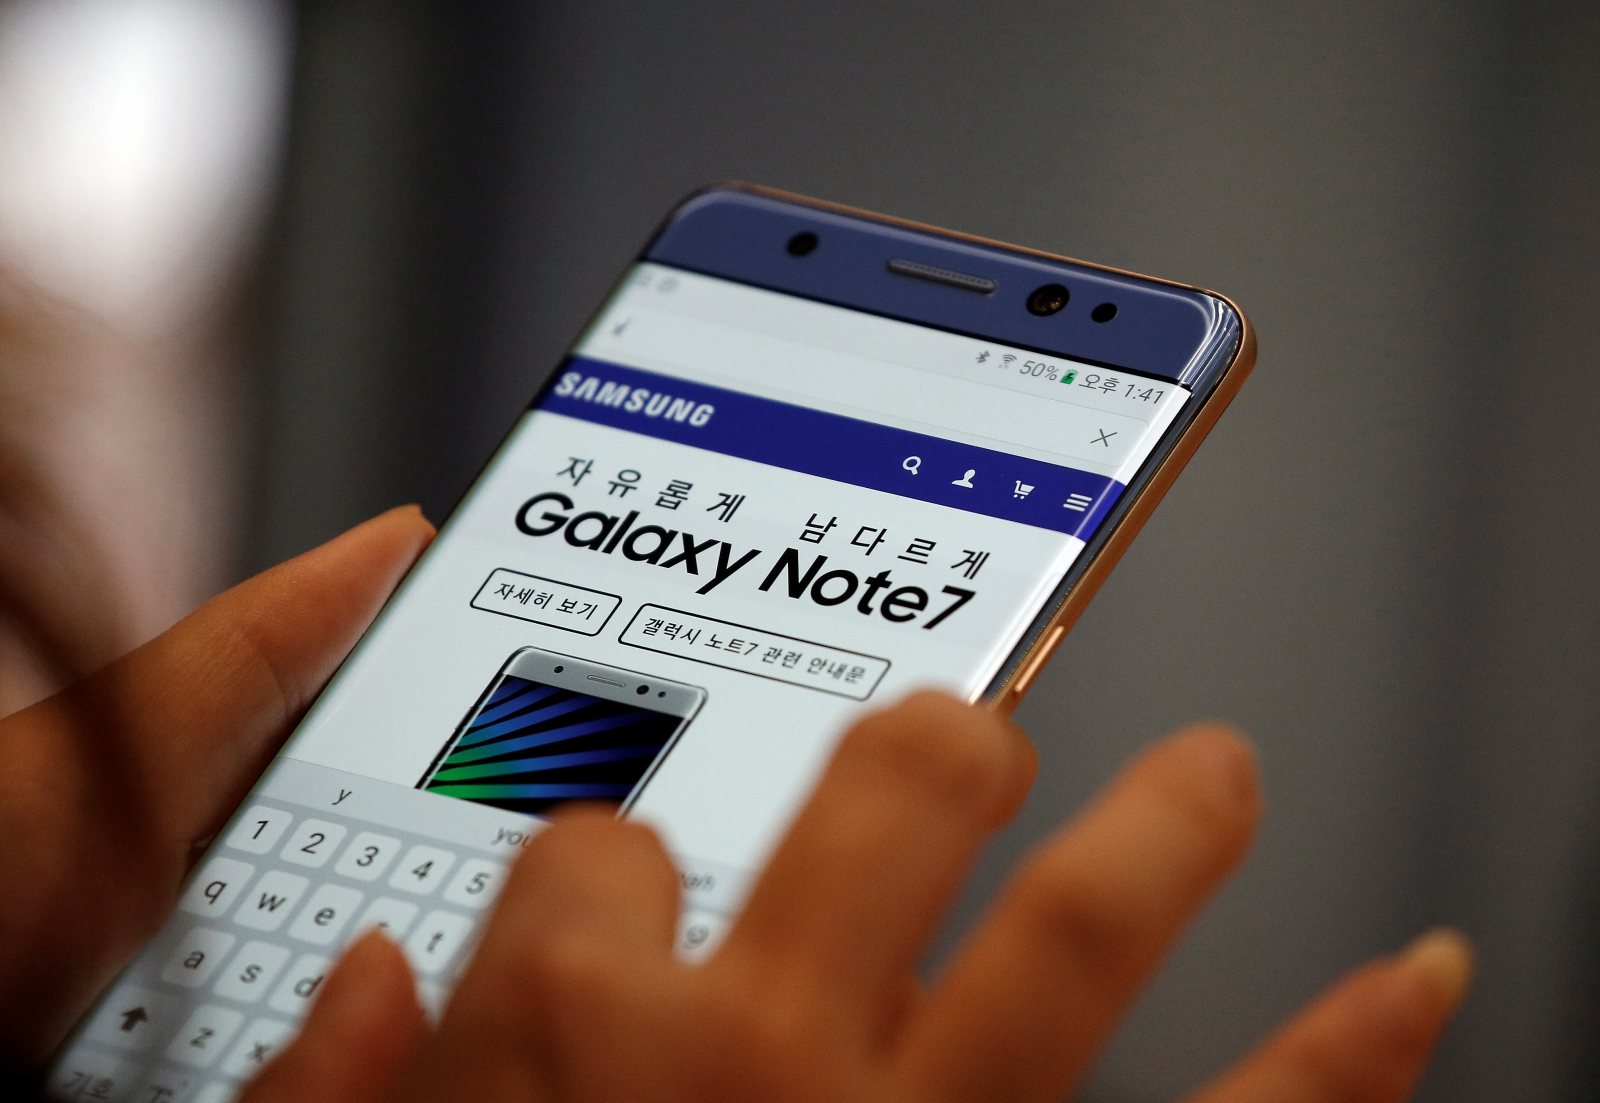 Samsung to sell refurbished Note 7 phones